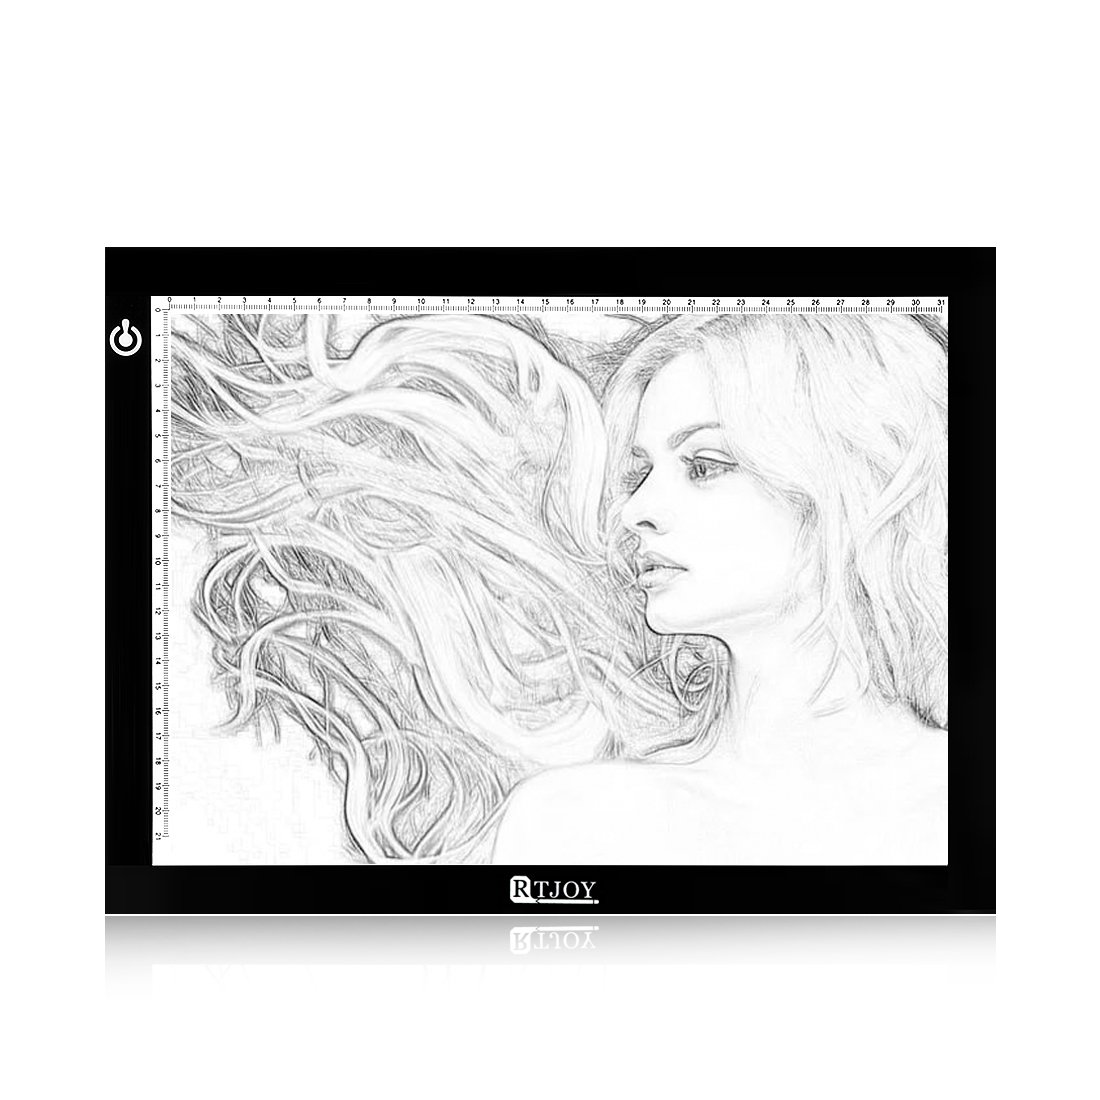 Tracing Light Pad RTjoy A4 Ultra-Thin LED Light up Box Tracer Portable Light Table Dimmable Brightness LED Artcraft Tracing Light Pad for Artists Drawing Sketching Animation Stencilling X-Ray Viewing